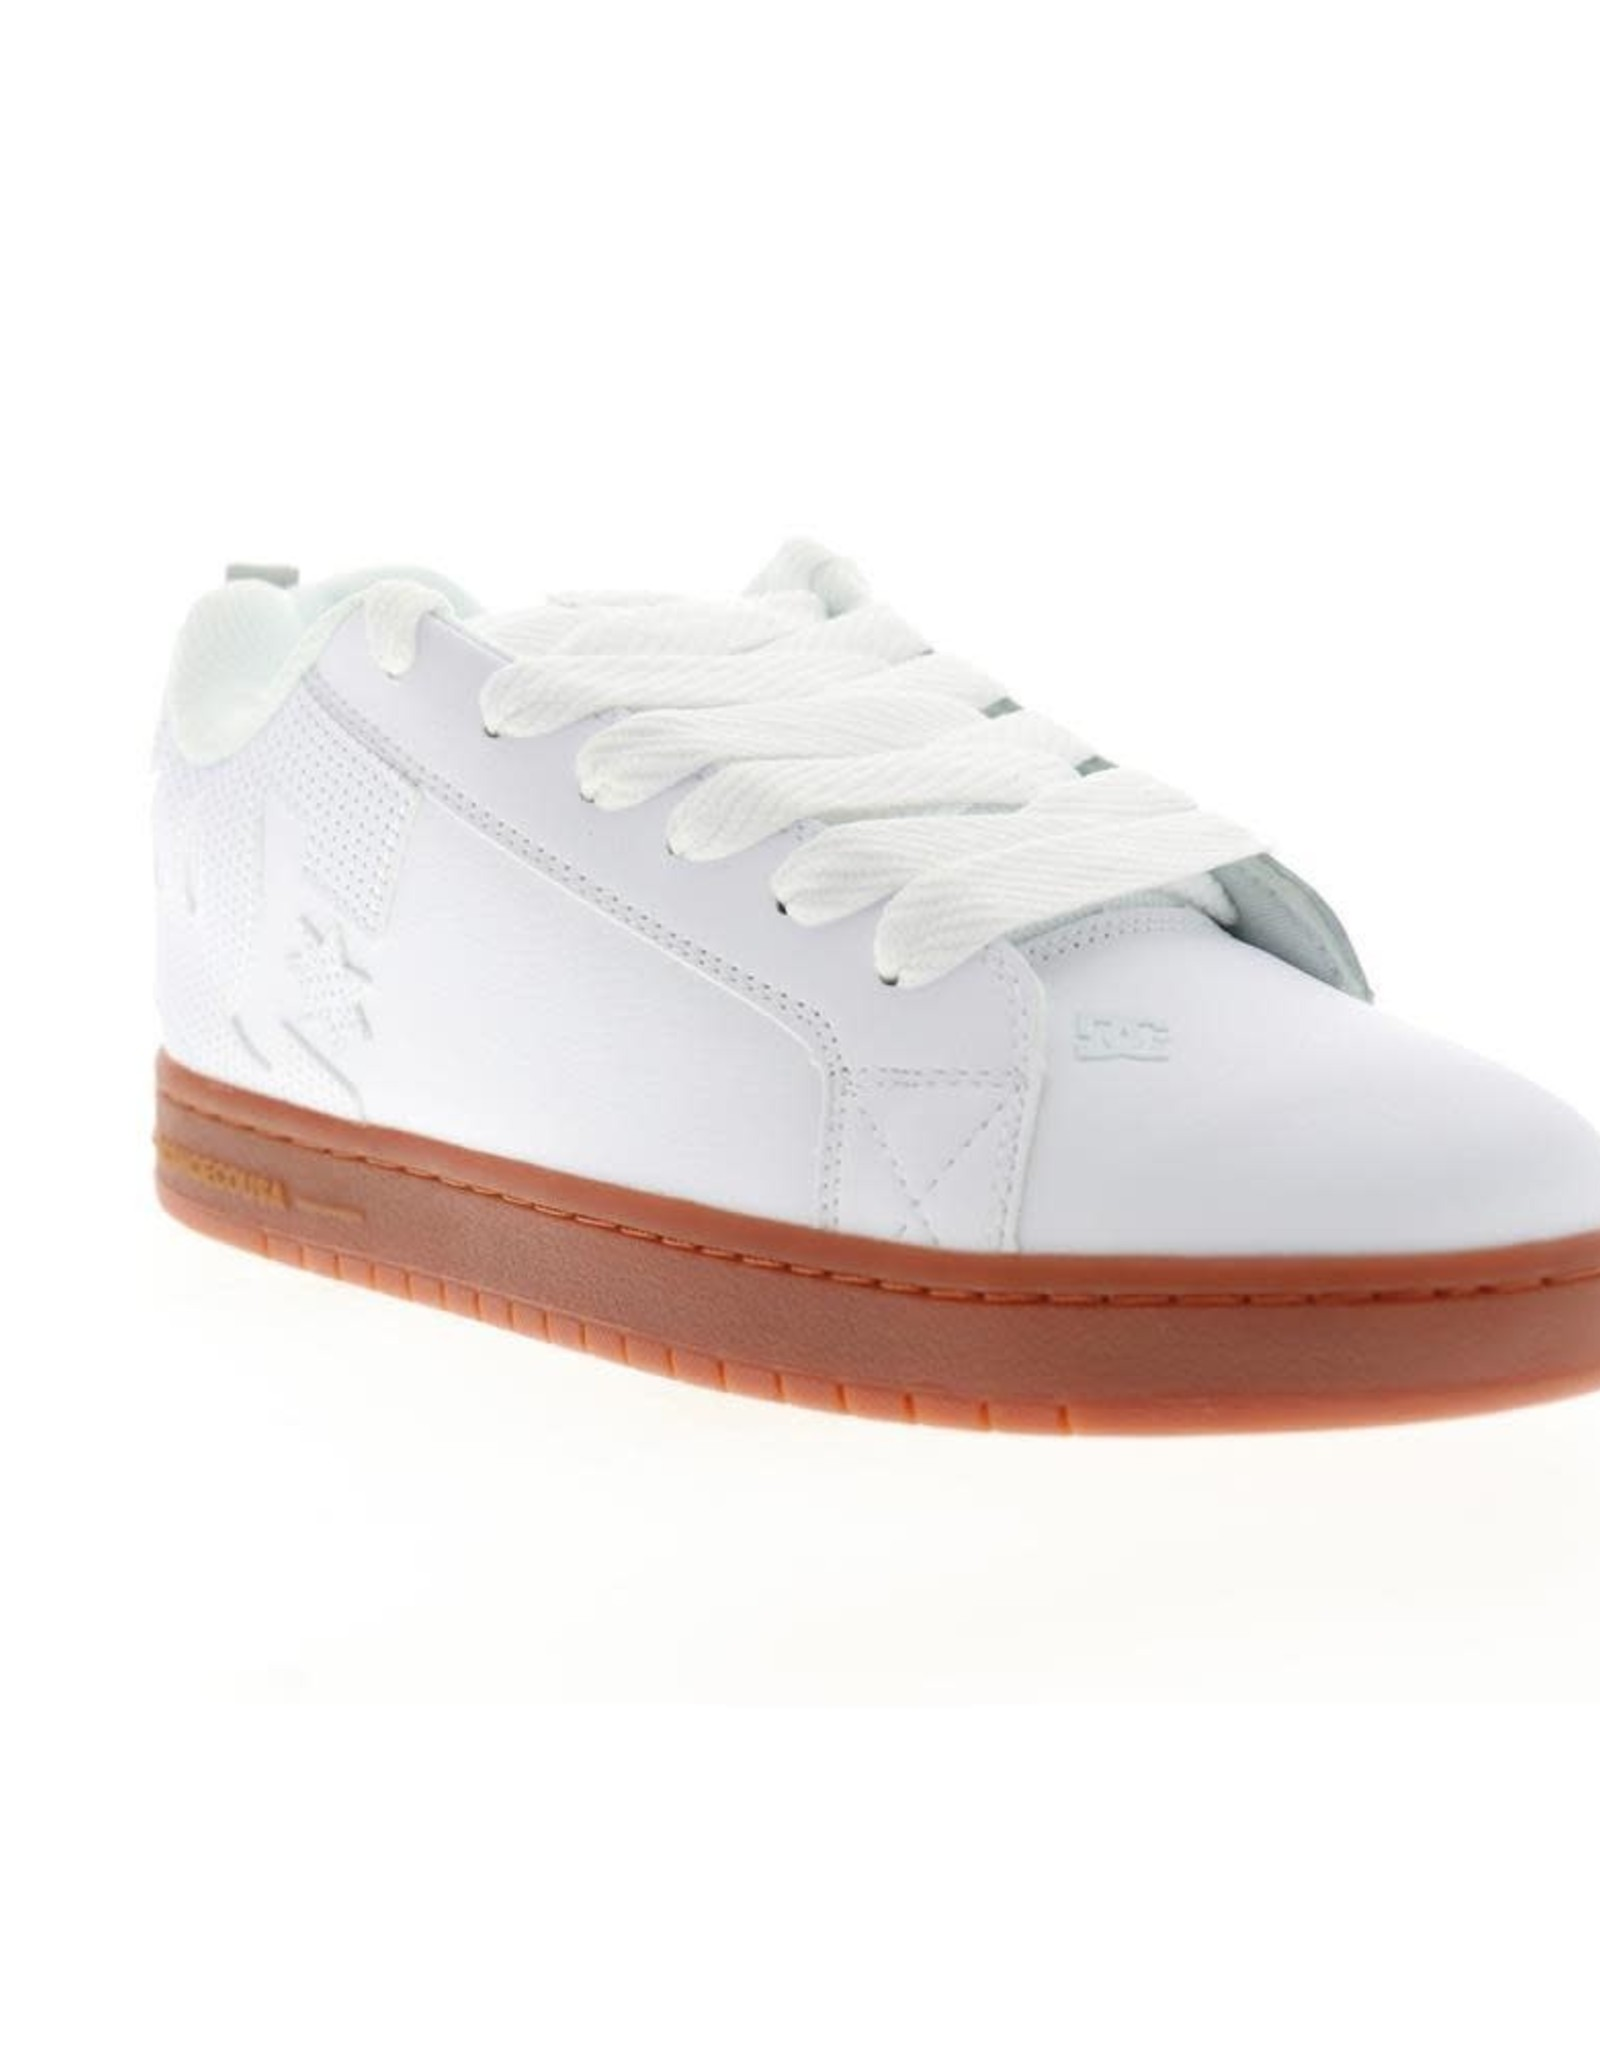 DC DC - COURT GRAPHIC - WHT/GUM